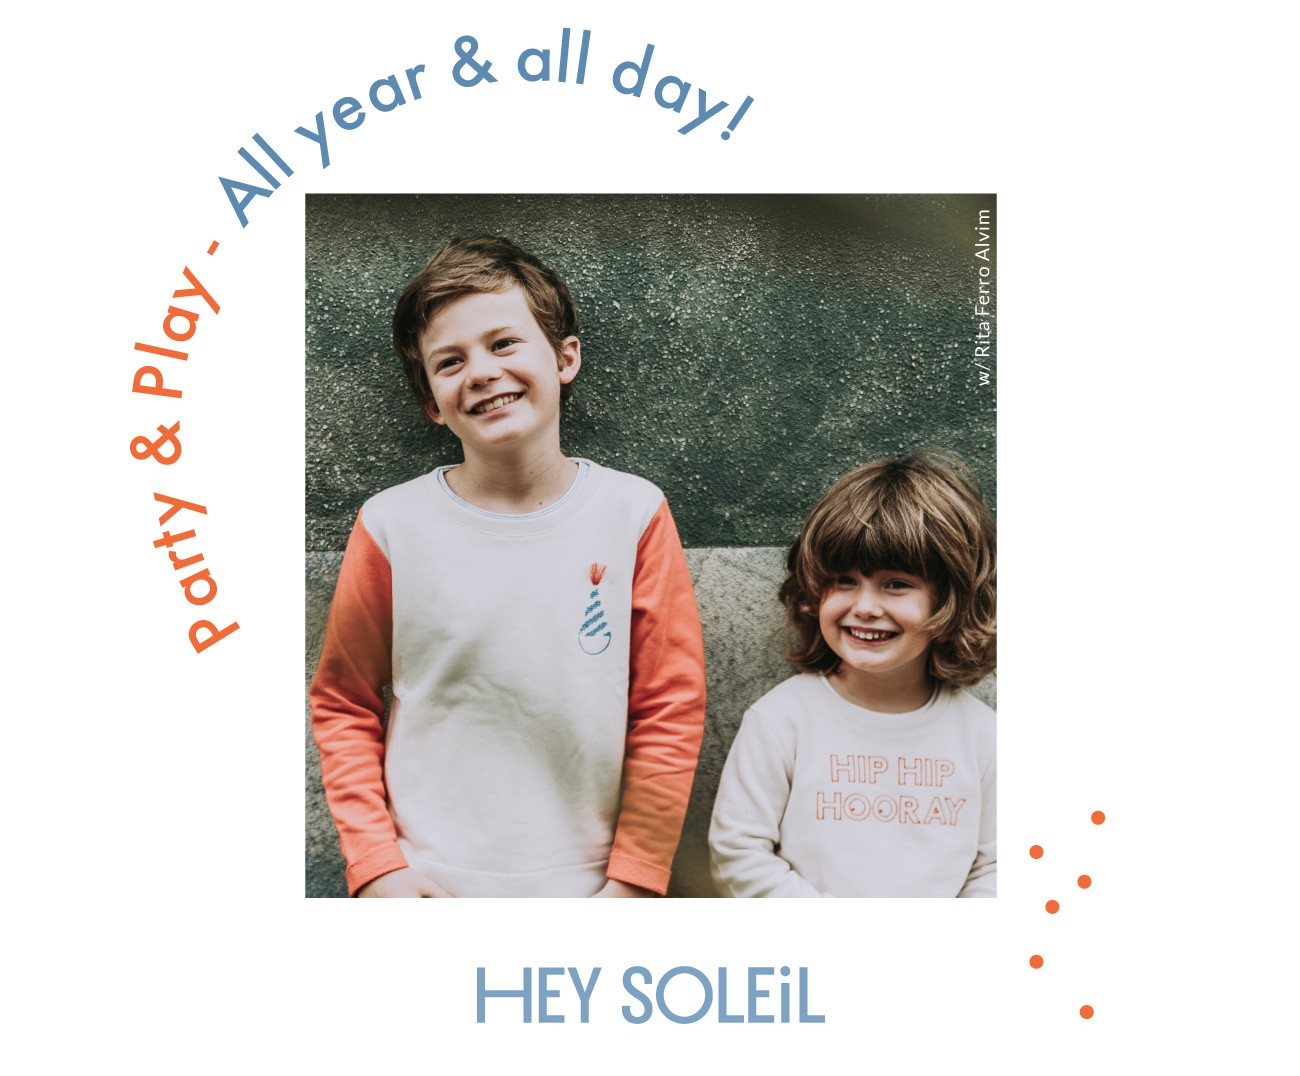 collab knot x hey soleil